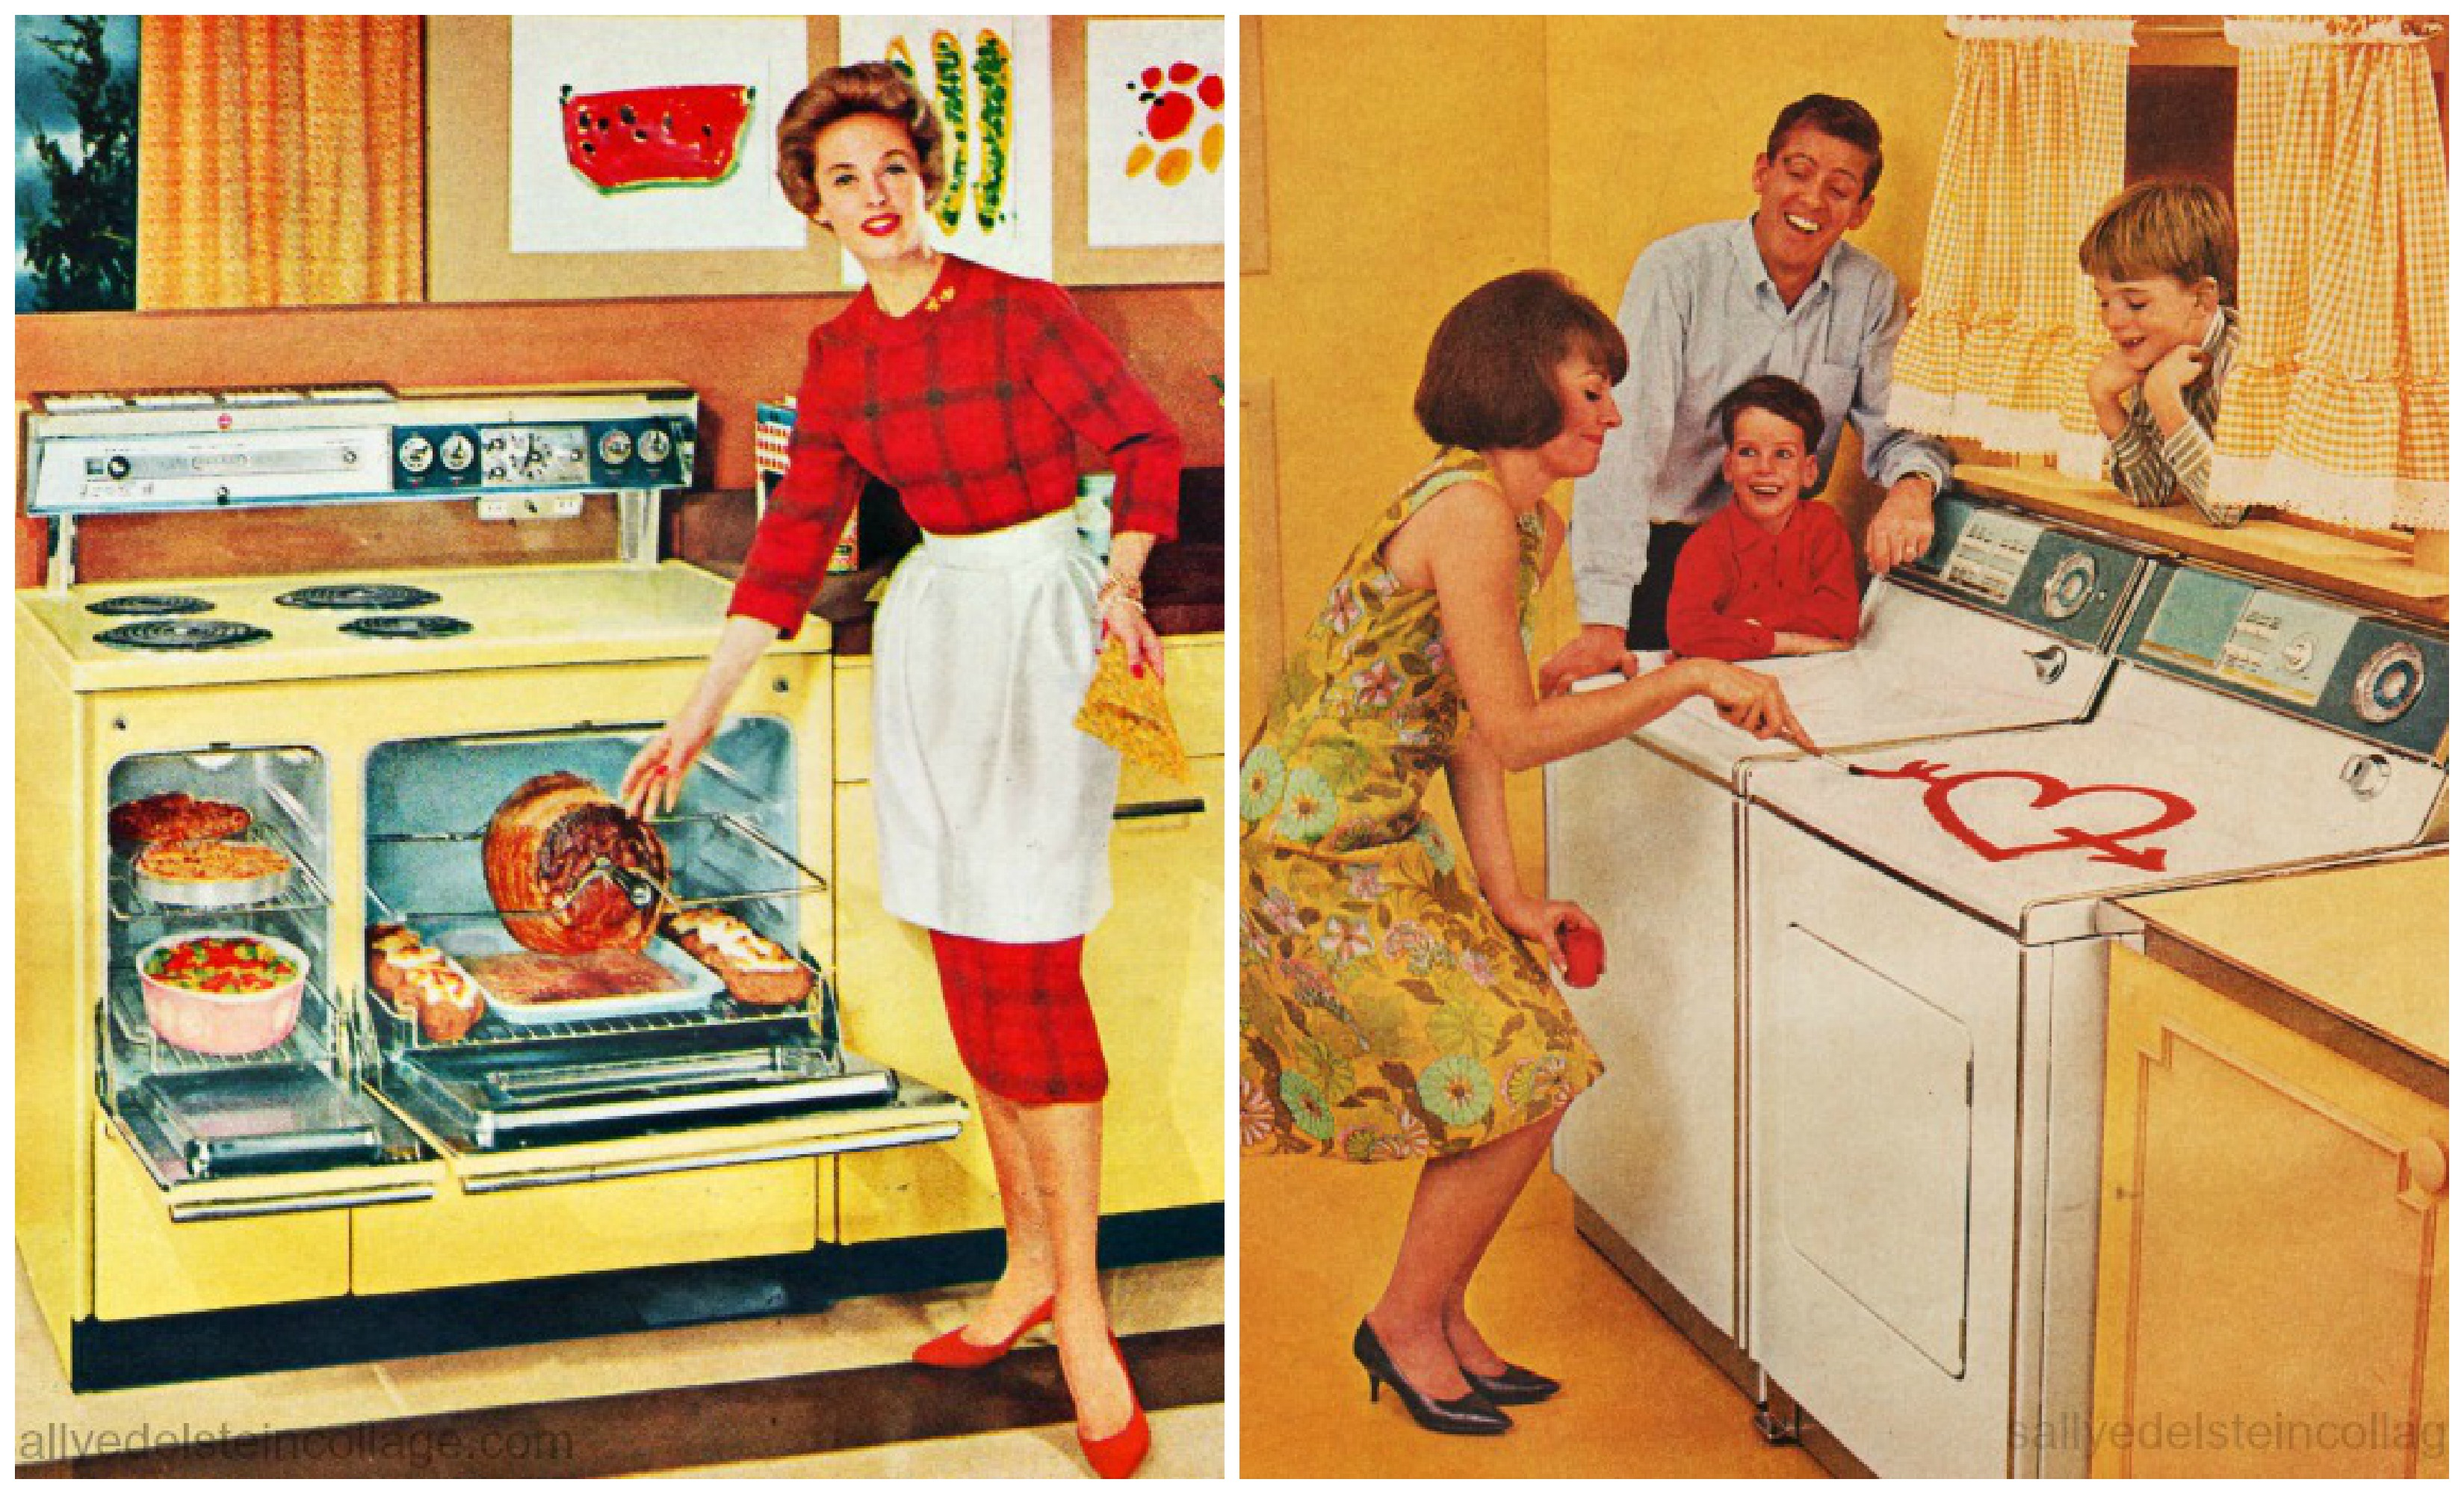 The Real Housewives of the Cold War Envisioning The American Dream